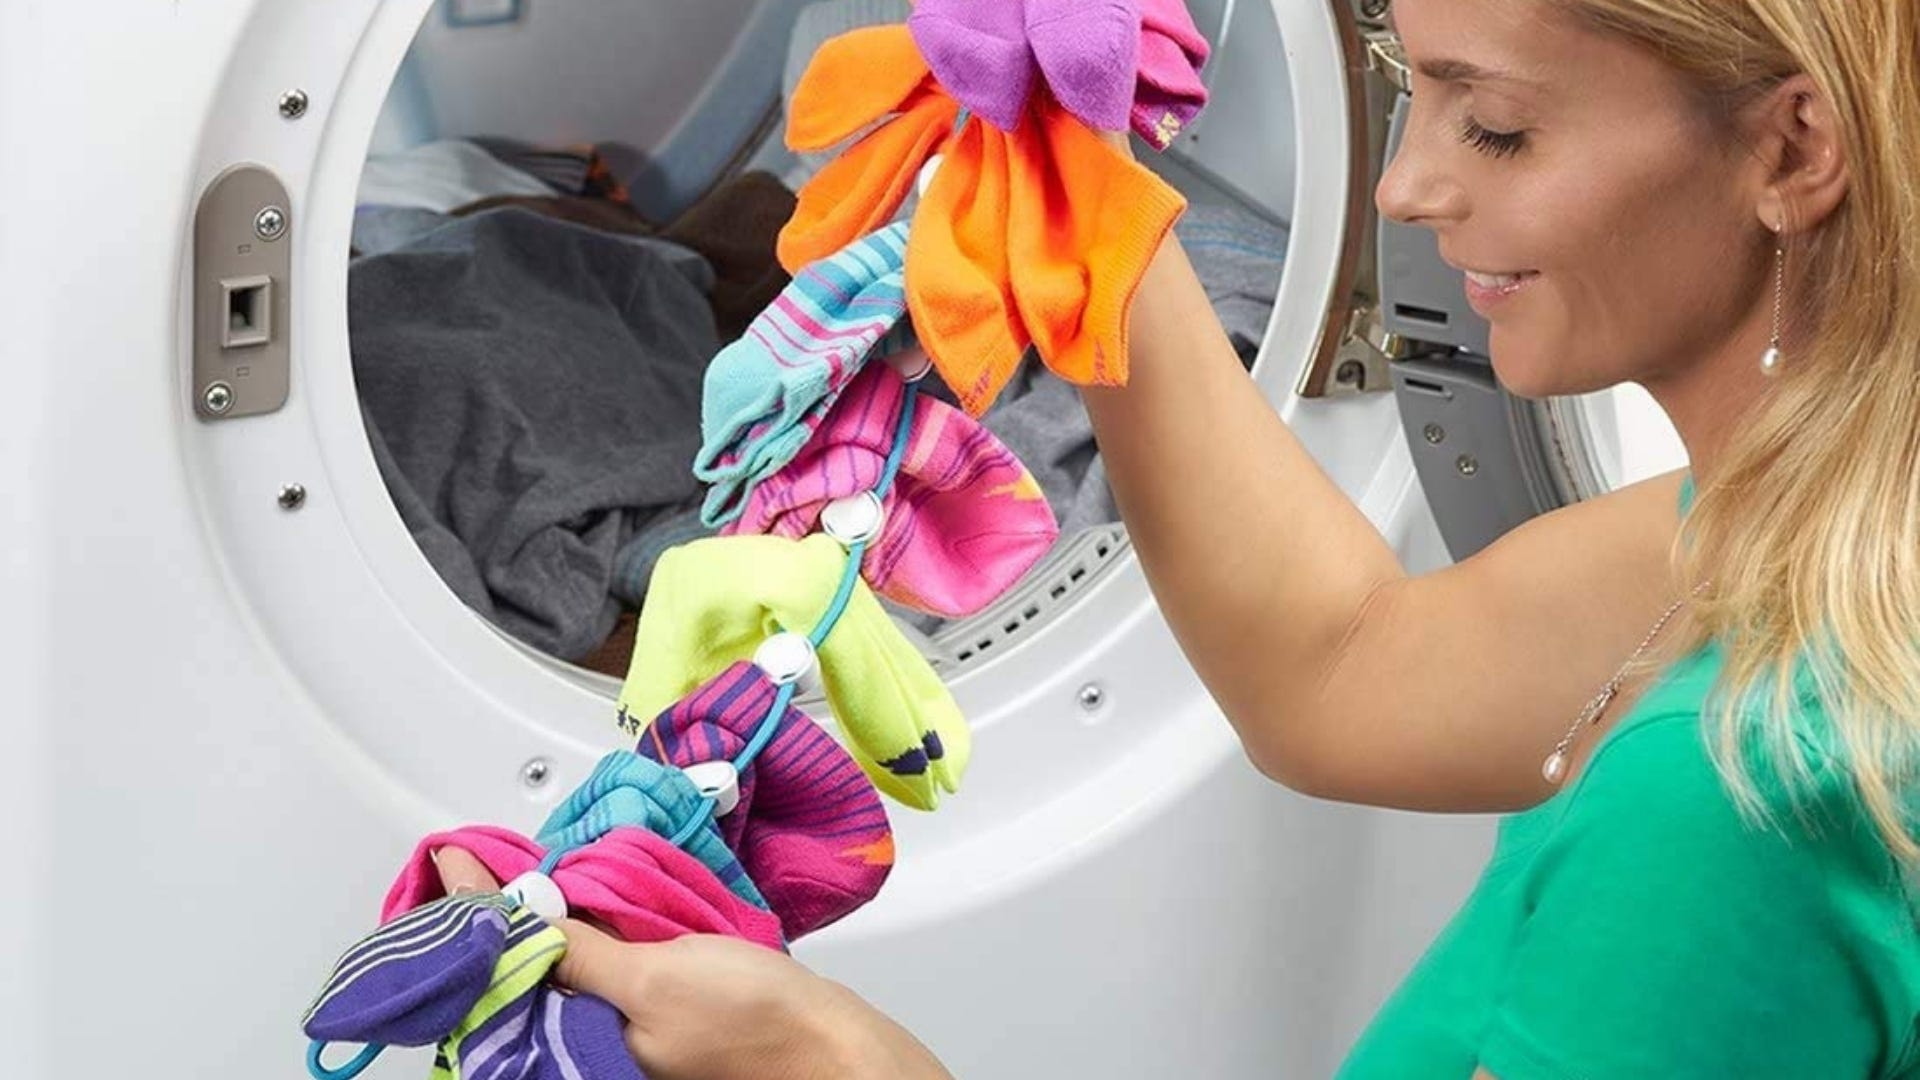 A woman holding a SockDock with a bunch of socks attached to it.